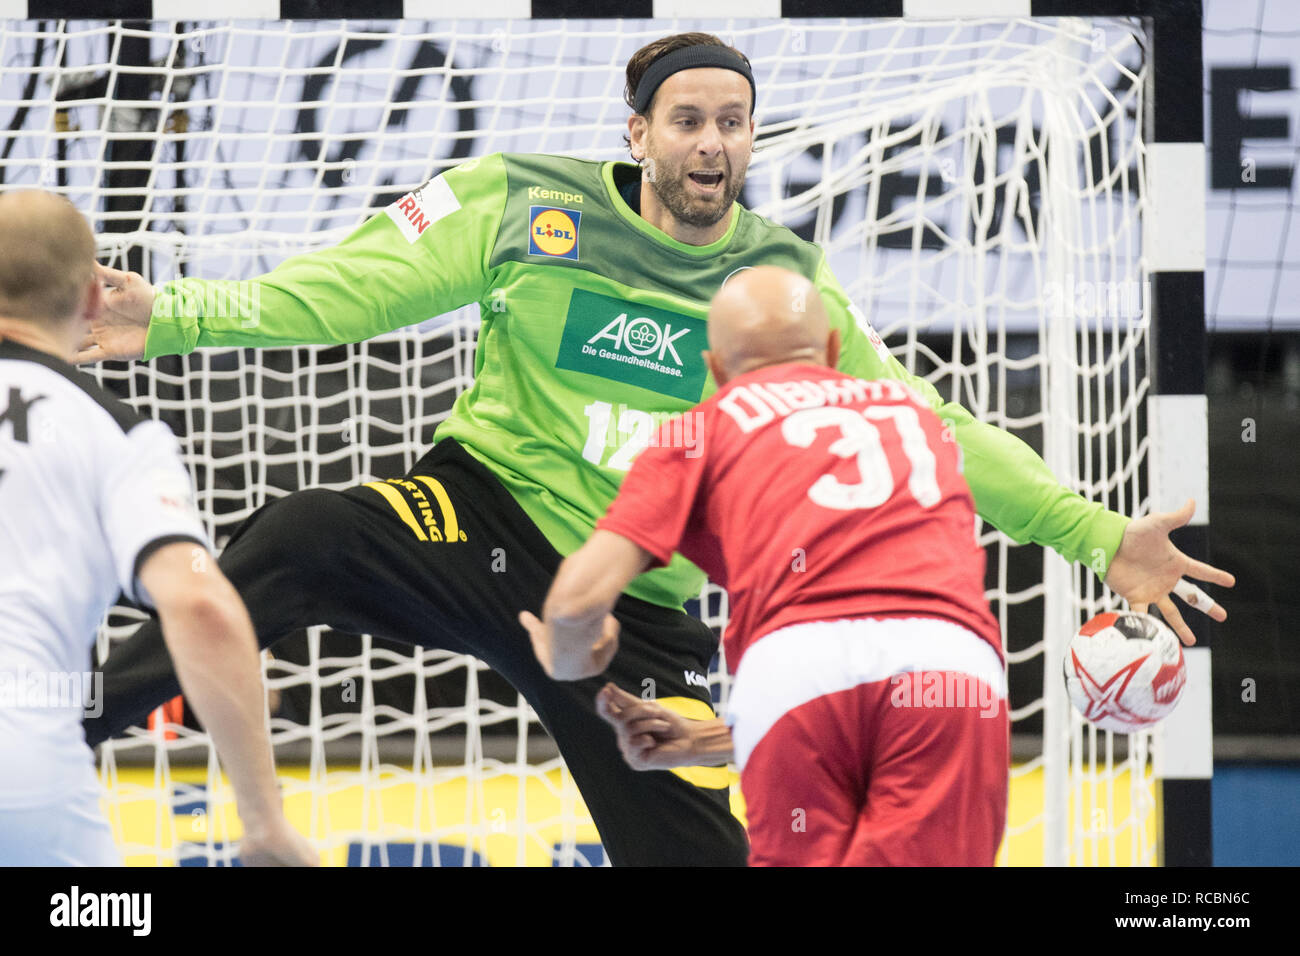 Goalkeeper Silvio HEINEVETTER (left, GER) in a seven-meter duel versus Timur DIBIROV (RUS), seven-yard, penalty throw, half figure, half figure, action, preliminary round Group A, Russia (RUS) - Germany (GER) 22:22, on 14.01.2019 in Berlin / Germany. Handball World Cup 2019, from 10.01. - 27.01.2019 in Germany and Denmark. | Usage worldwide Stock Photo